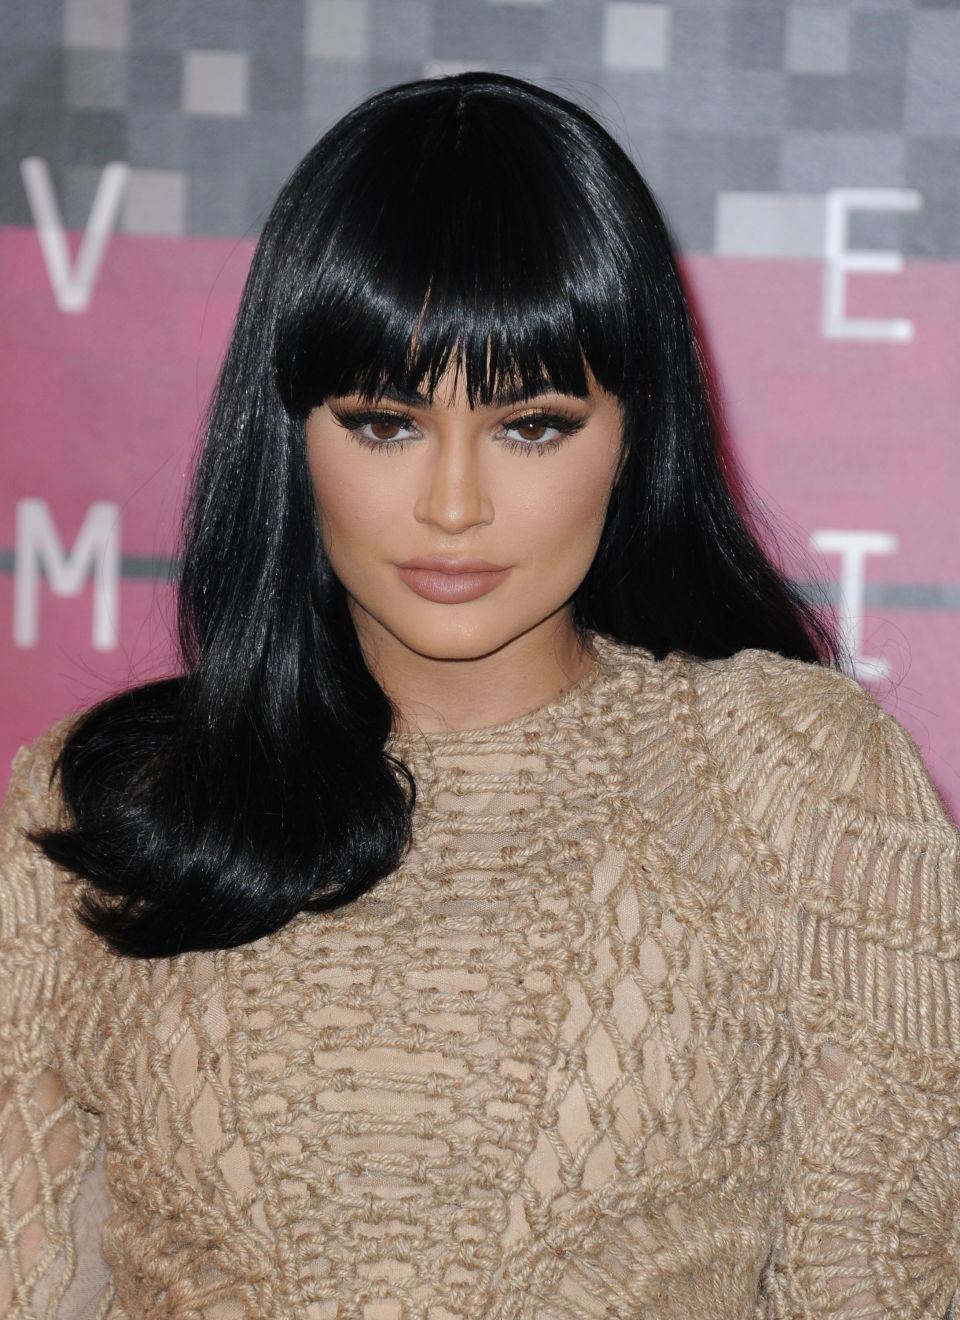 Kylie Jenner in anul 2015